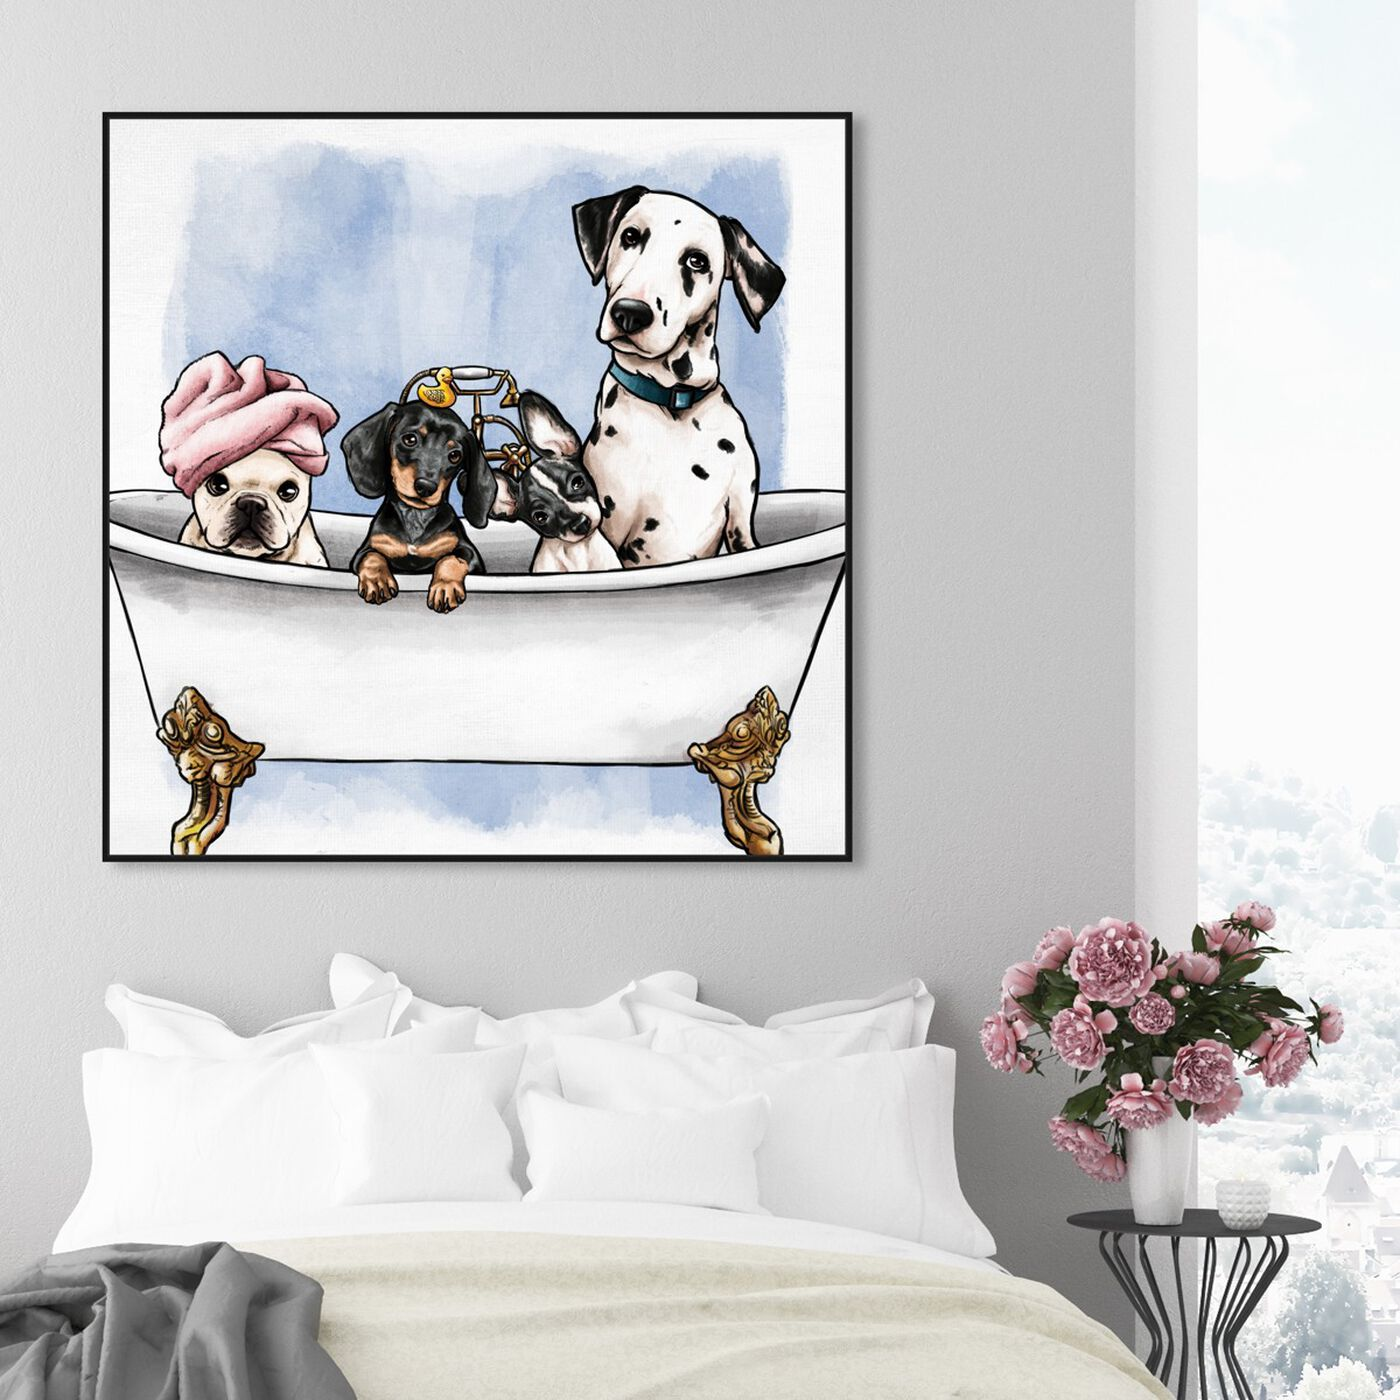 Hanging view of Pets In The Tub featuring bath and laundry and bathtubs art.